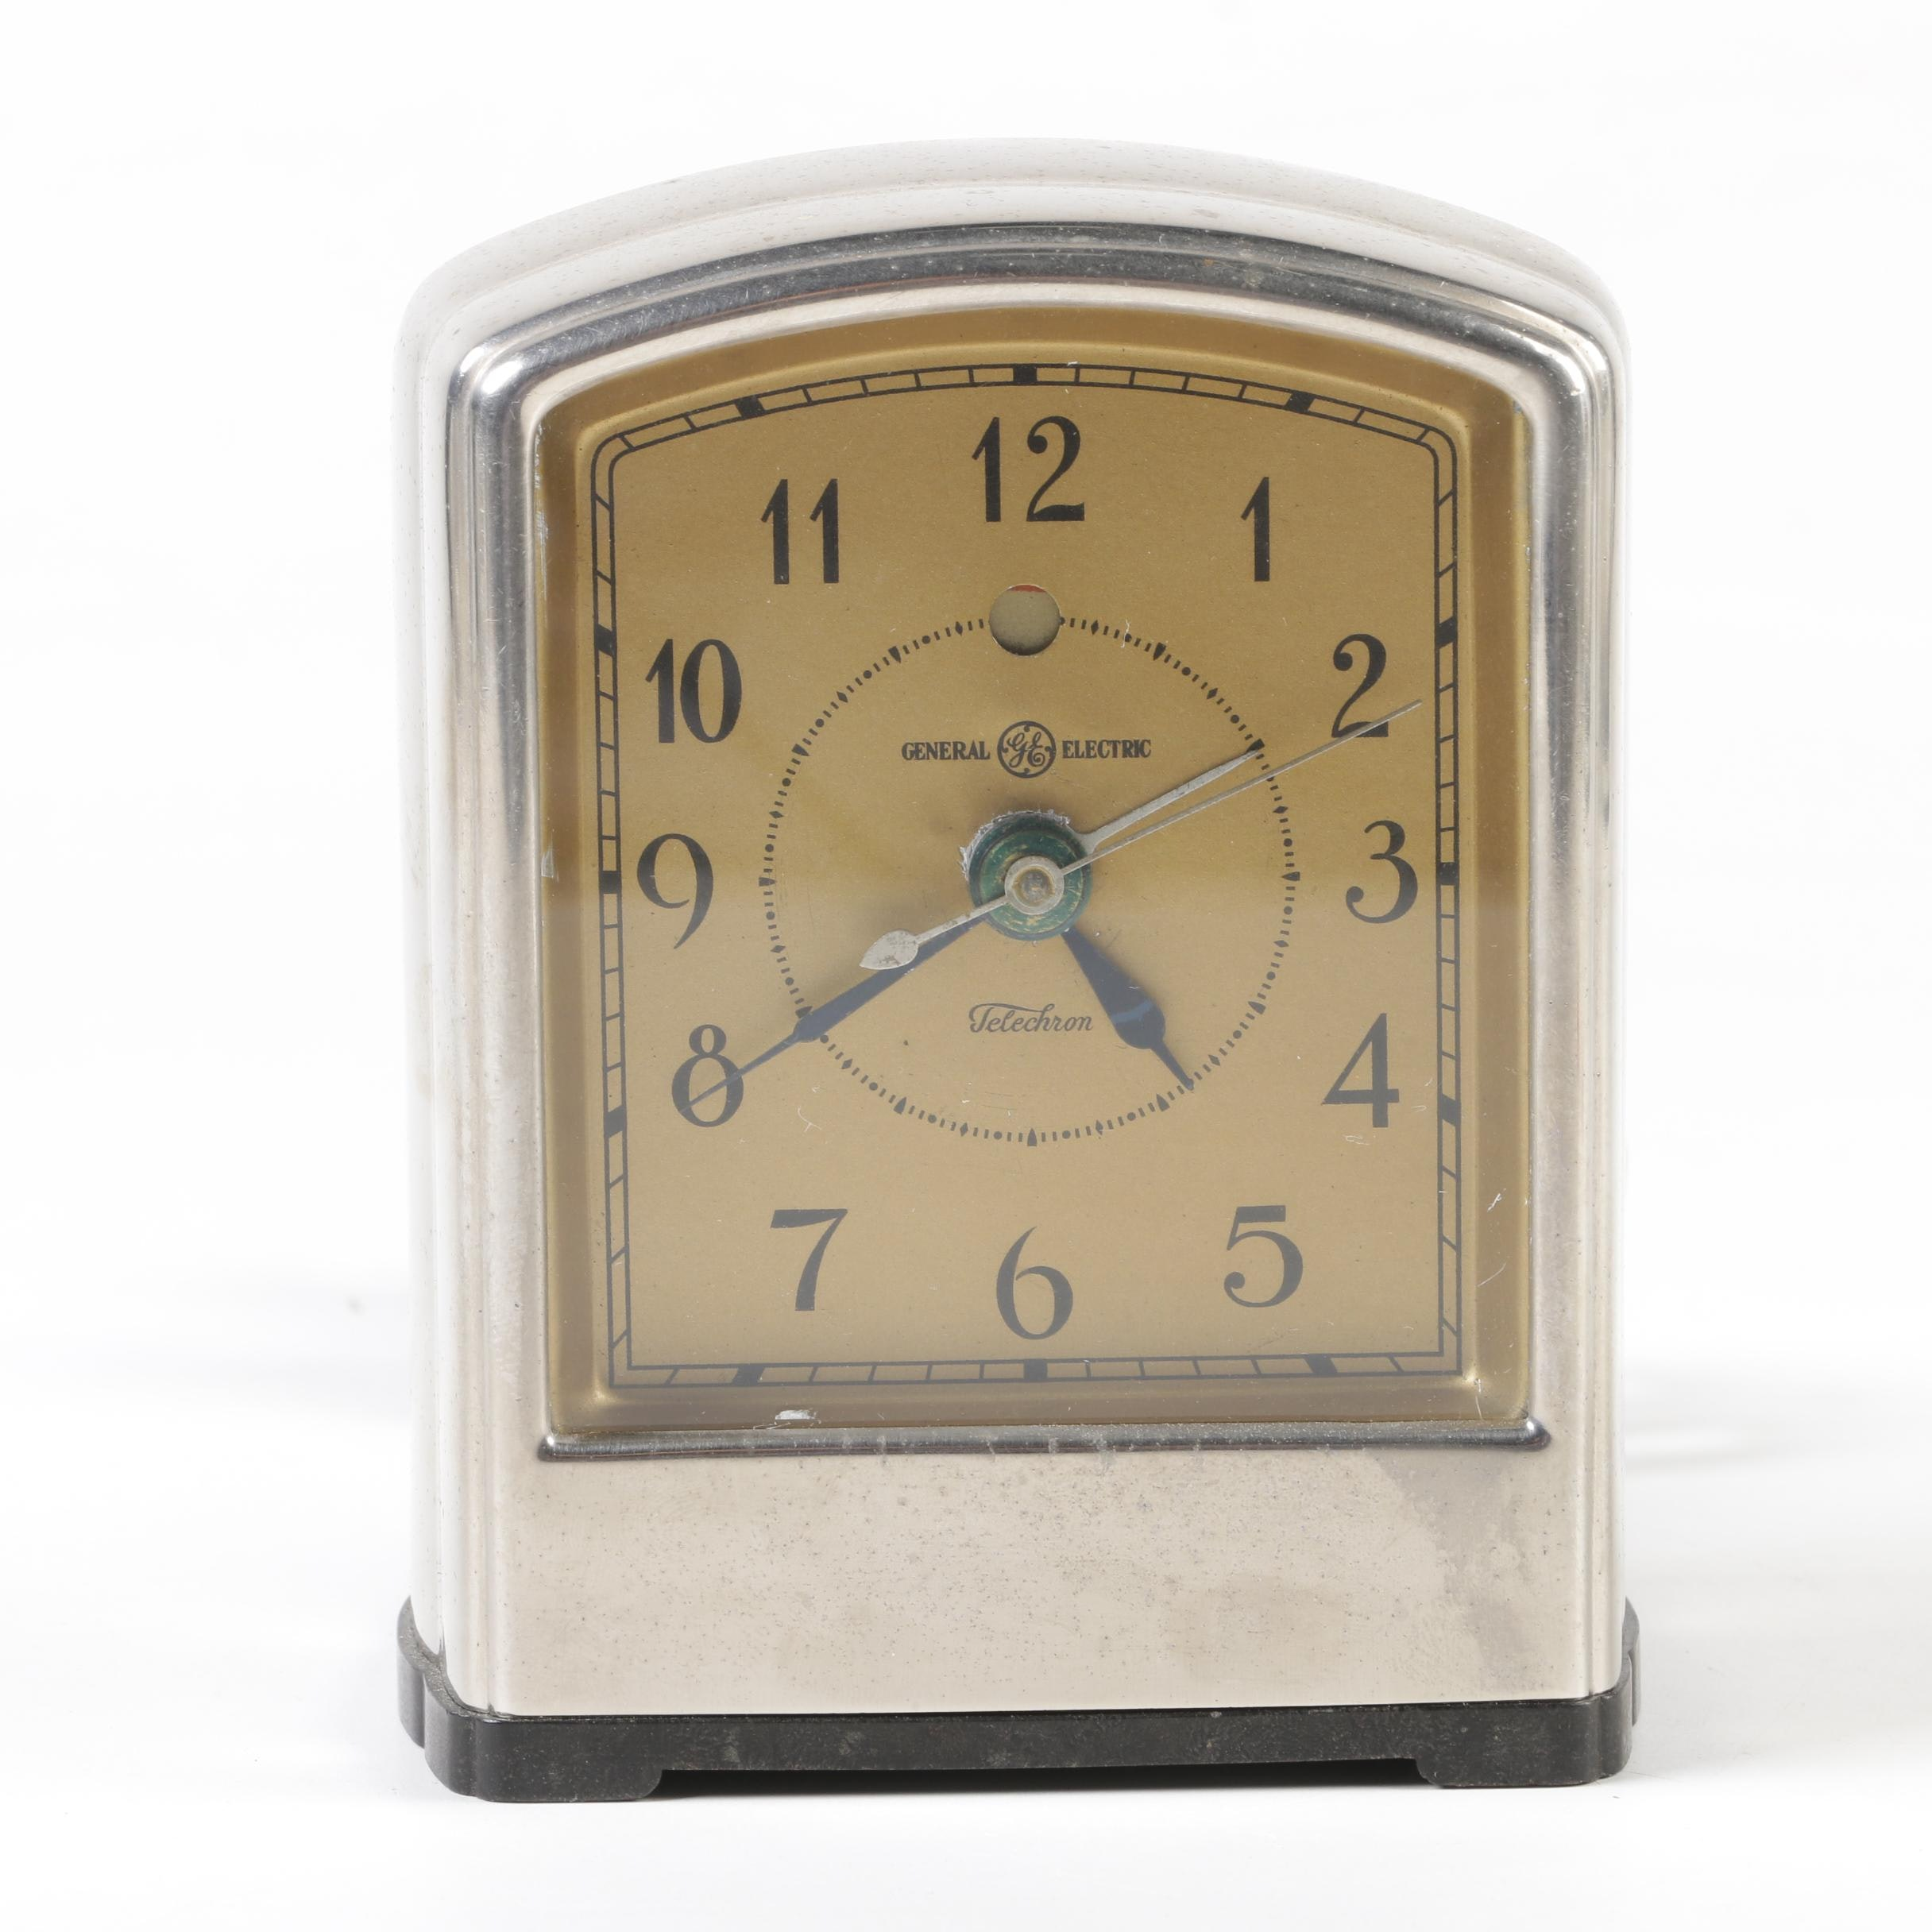 "General Electric ""Telalarm"" Telechron Electric Alarm Clock, circa 1929"